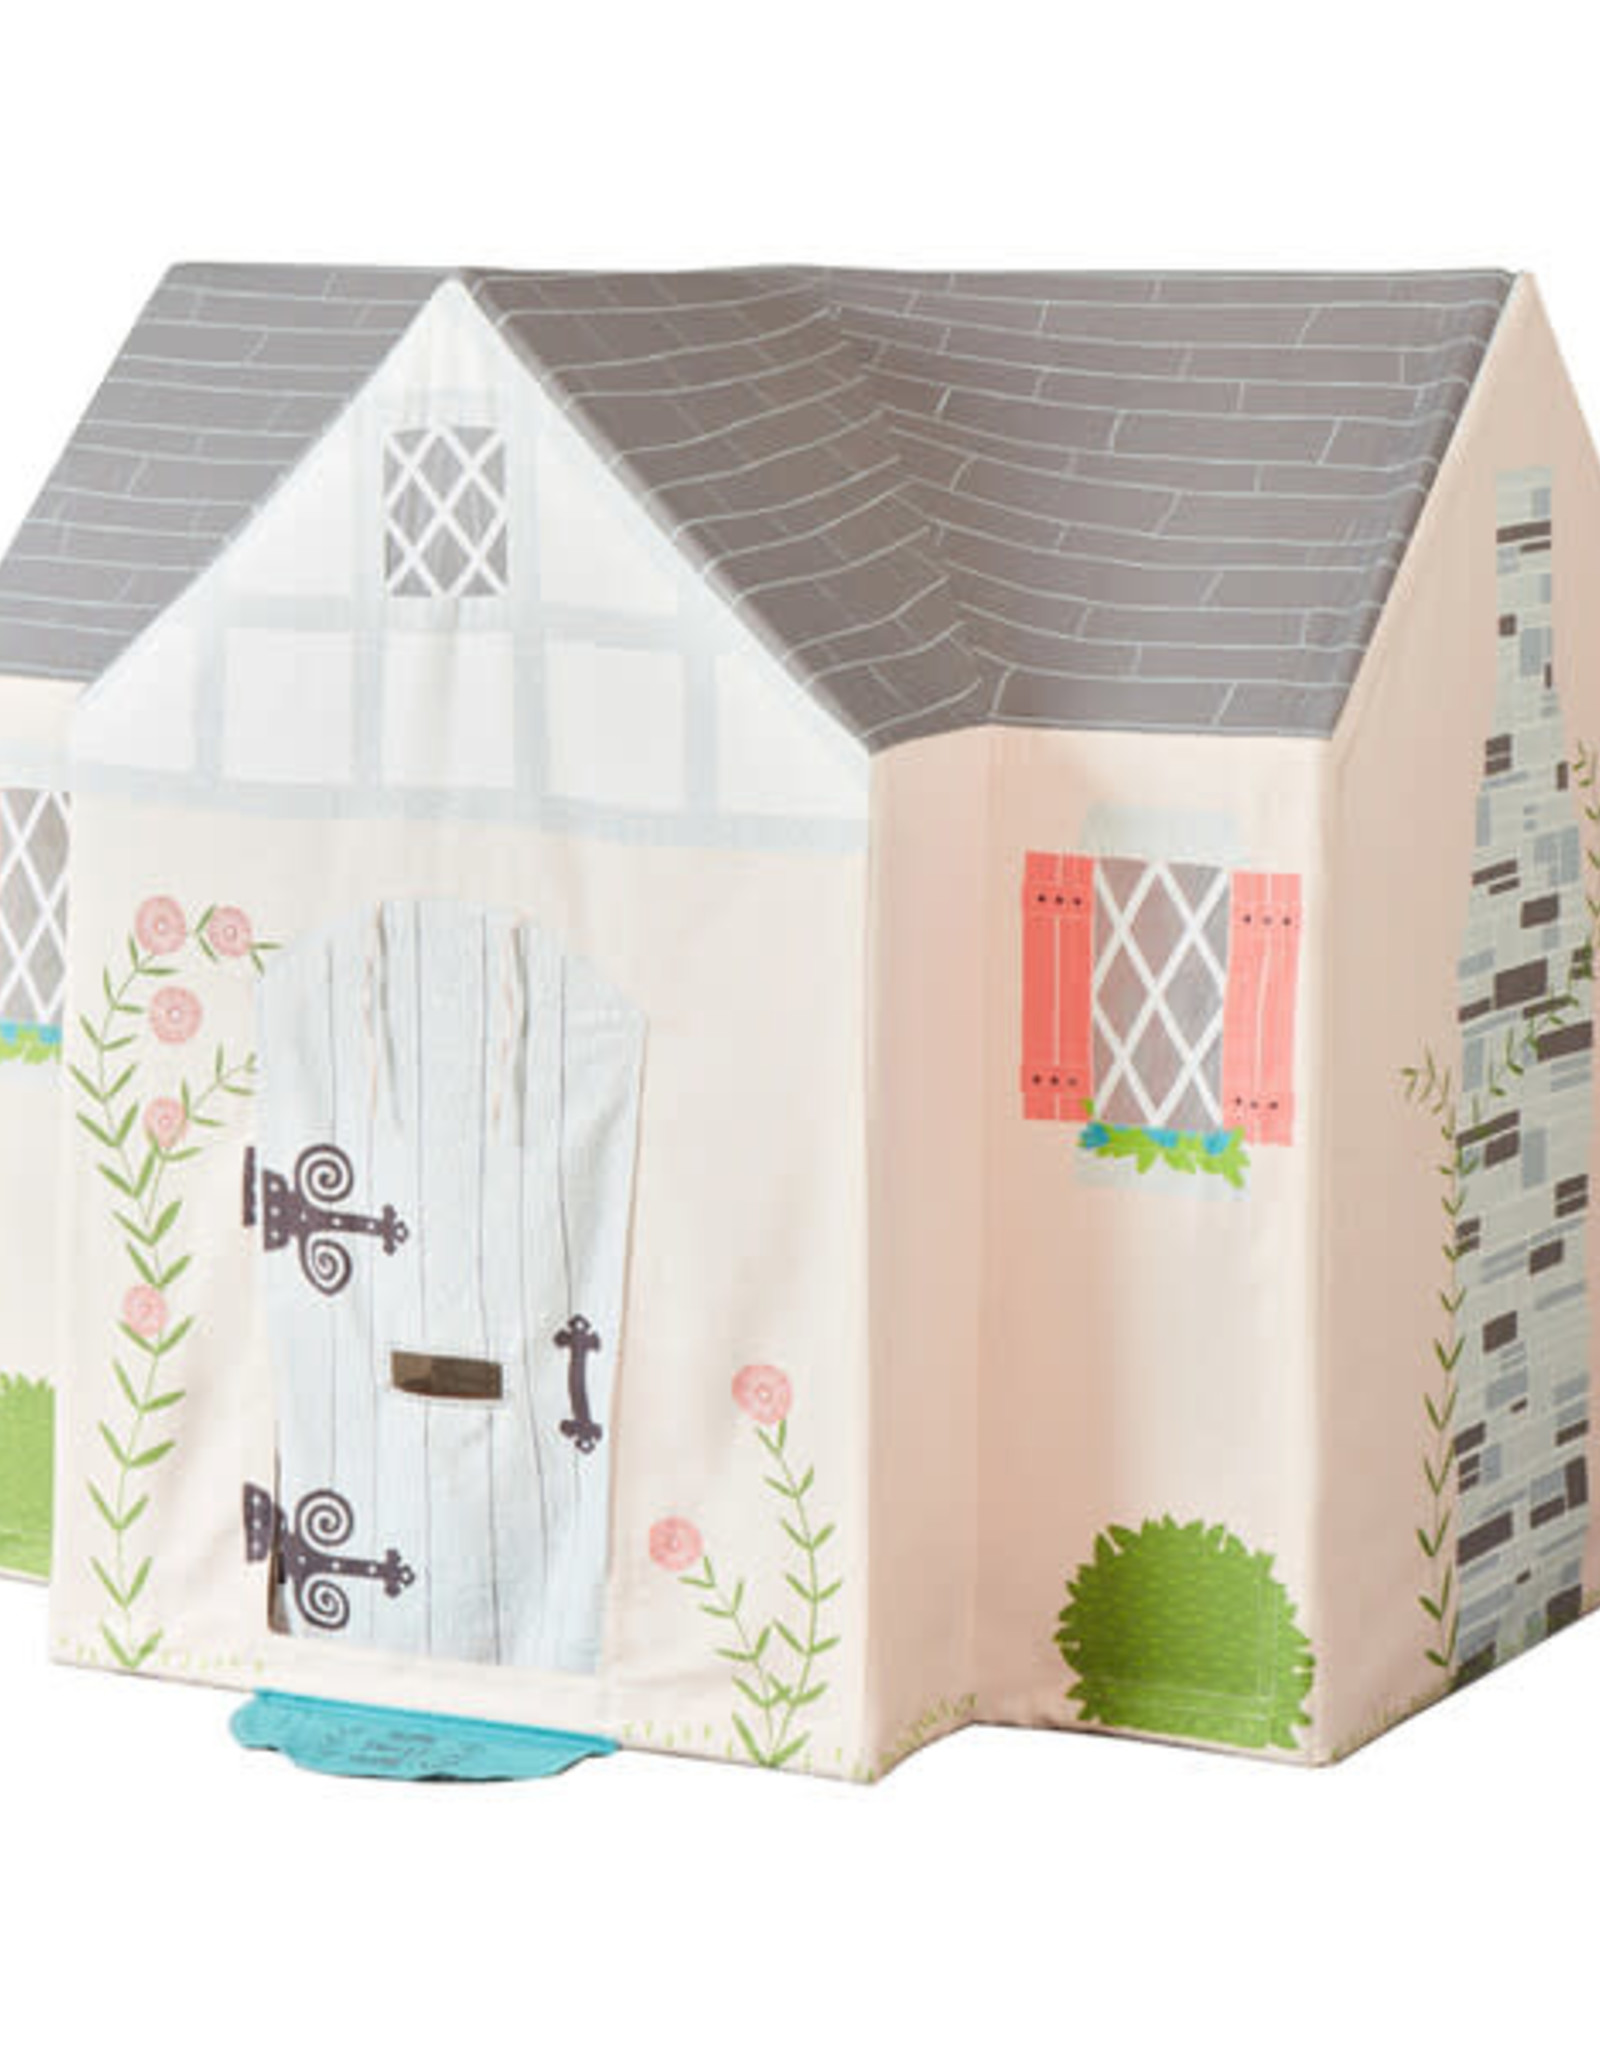 Asweets Dream Home Play Home